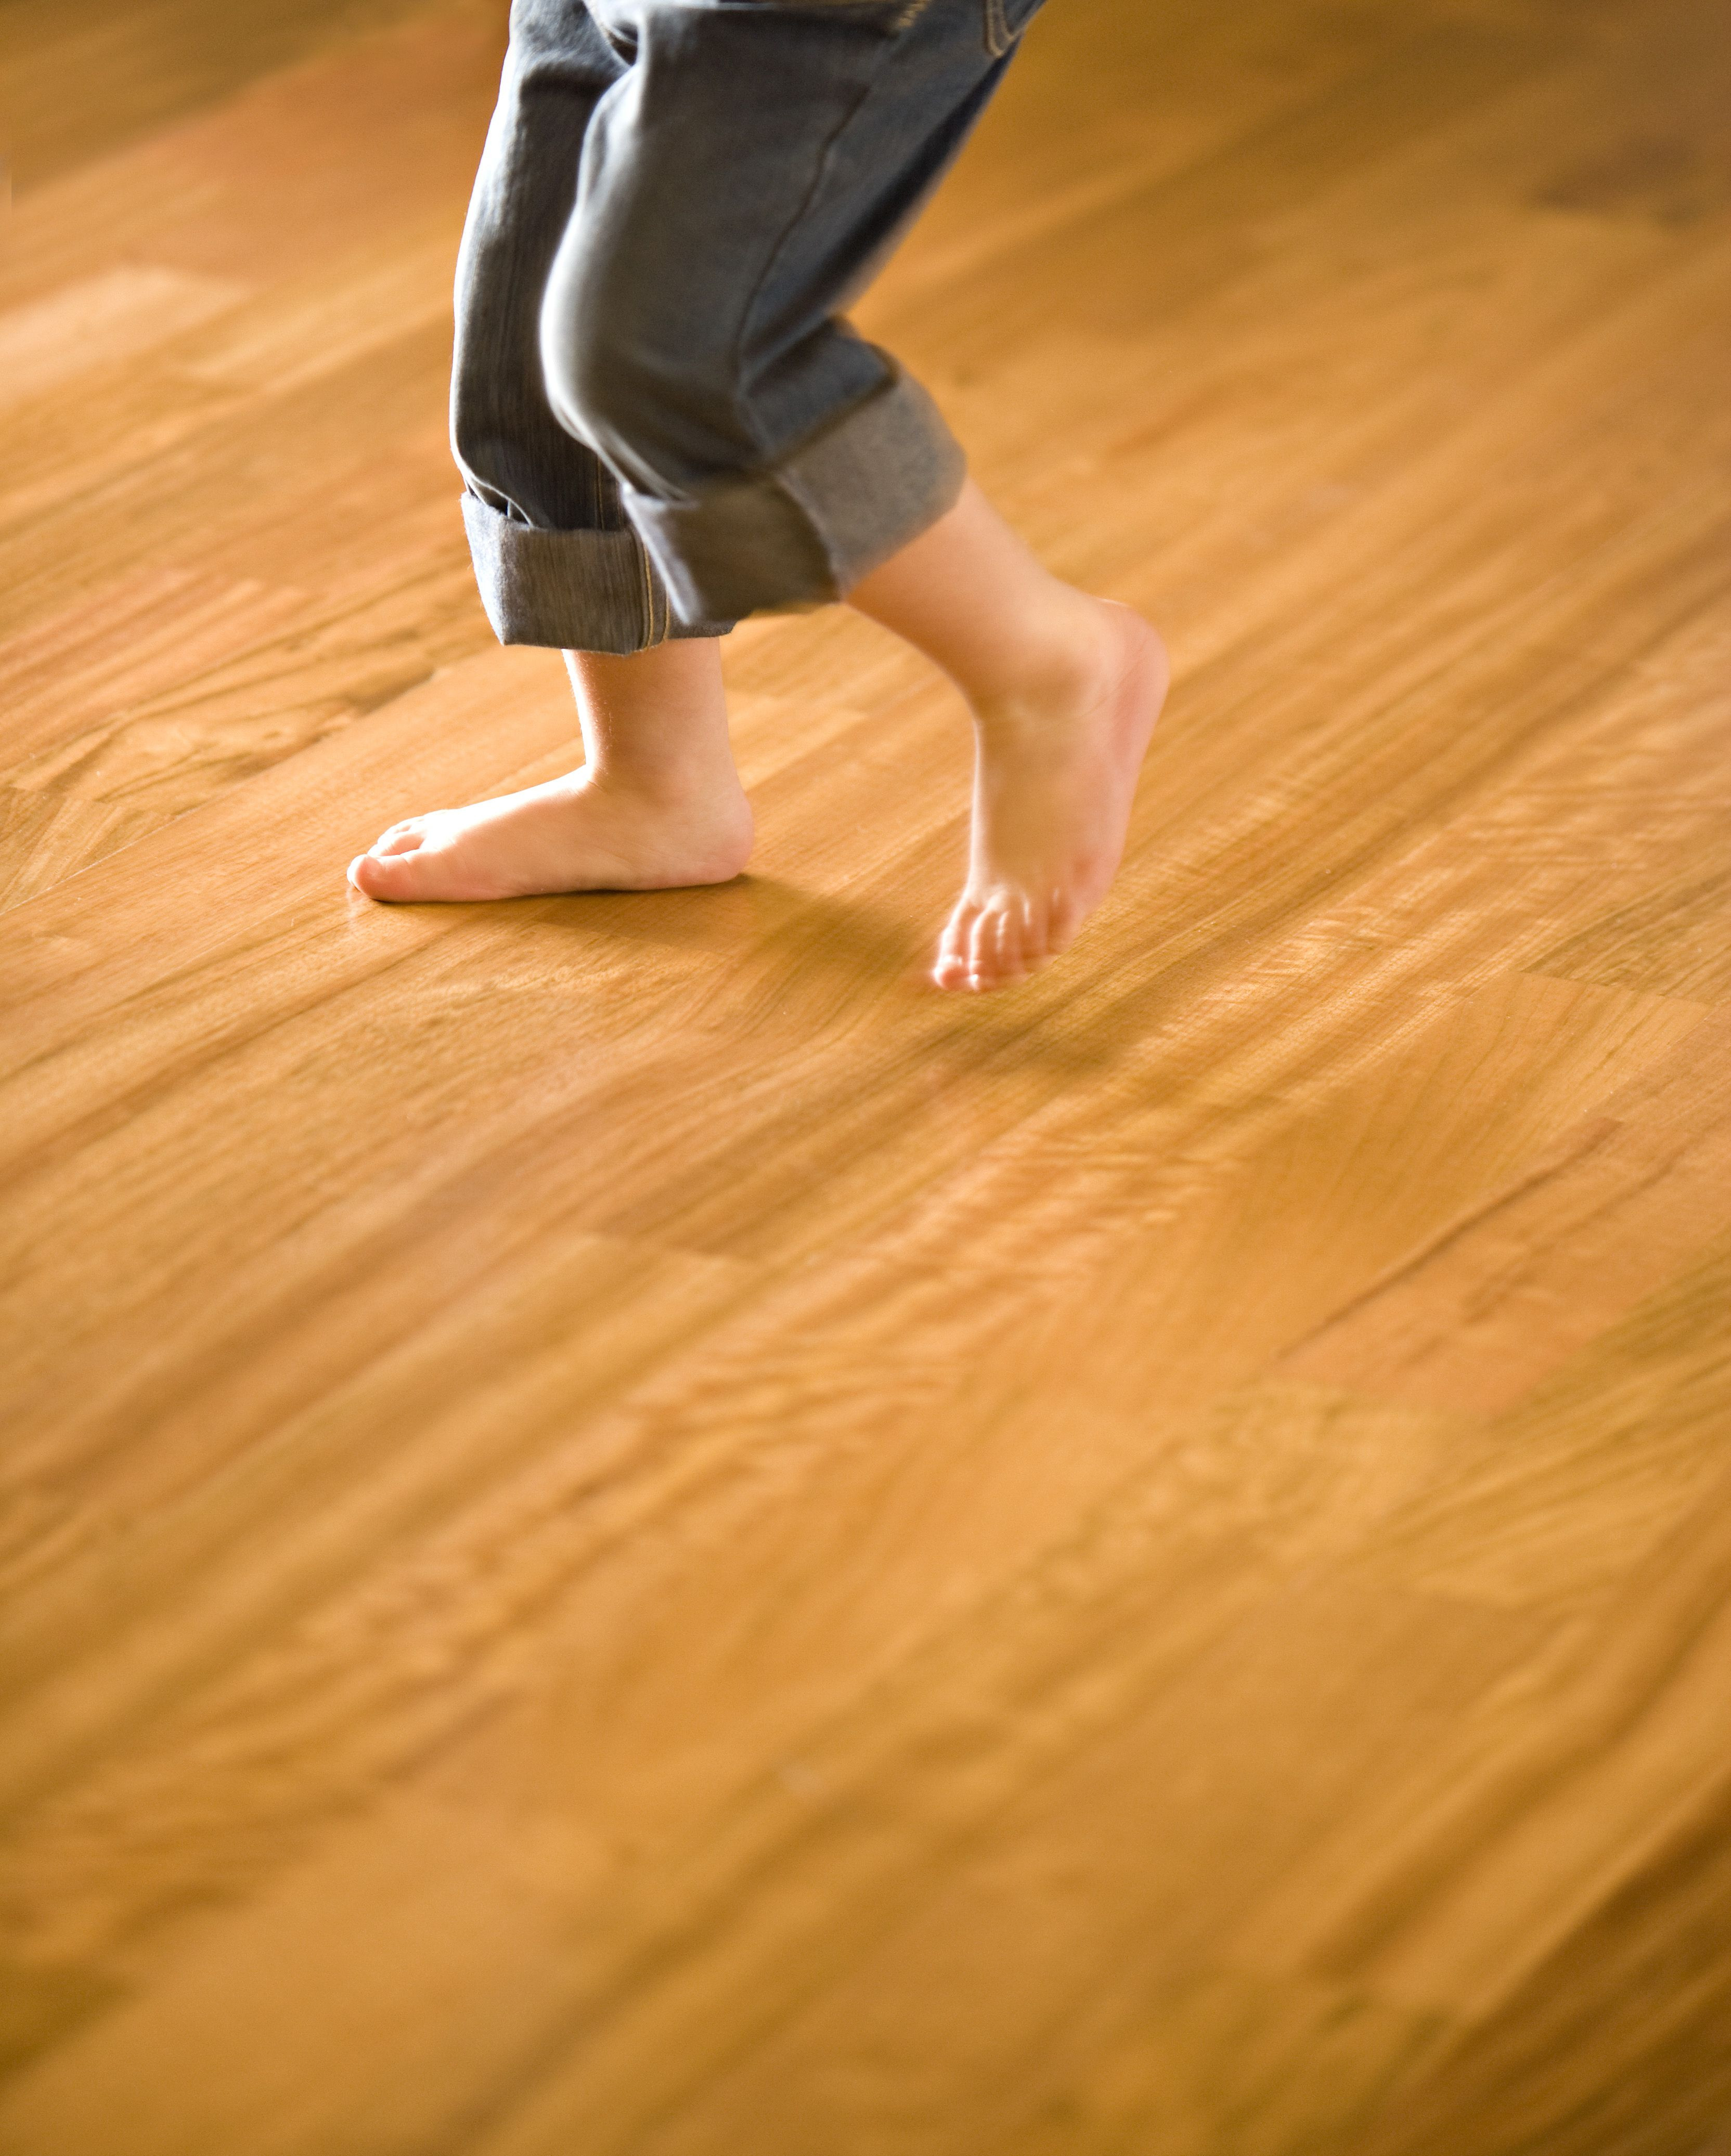 diy hardwood floor of make sure your hardwood floors are clean for the tiny bare feet in in make sure your hardwood floors are clean for the tiny bare feet in your home